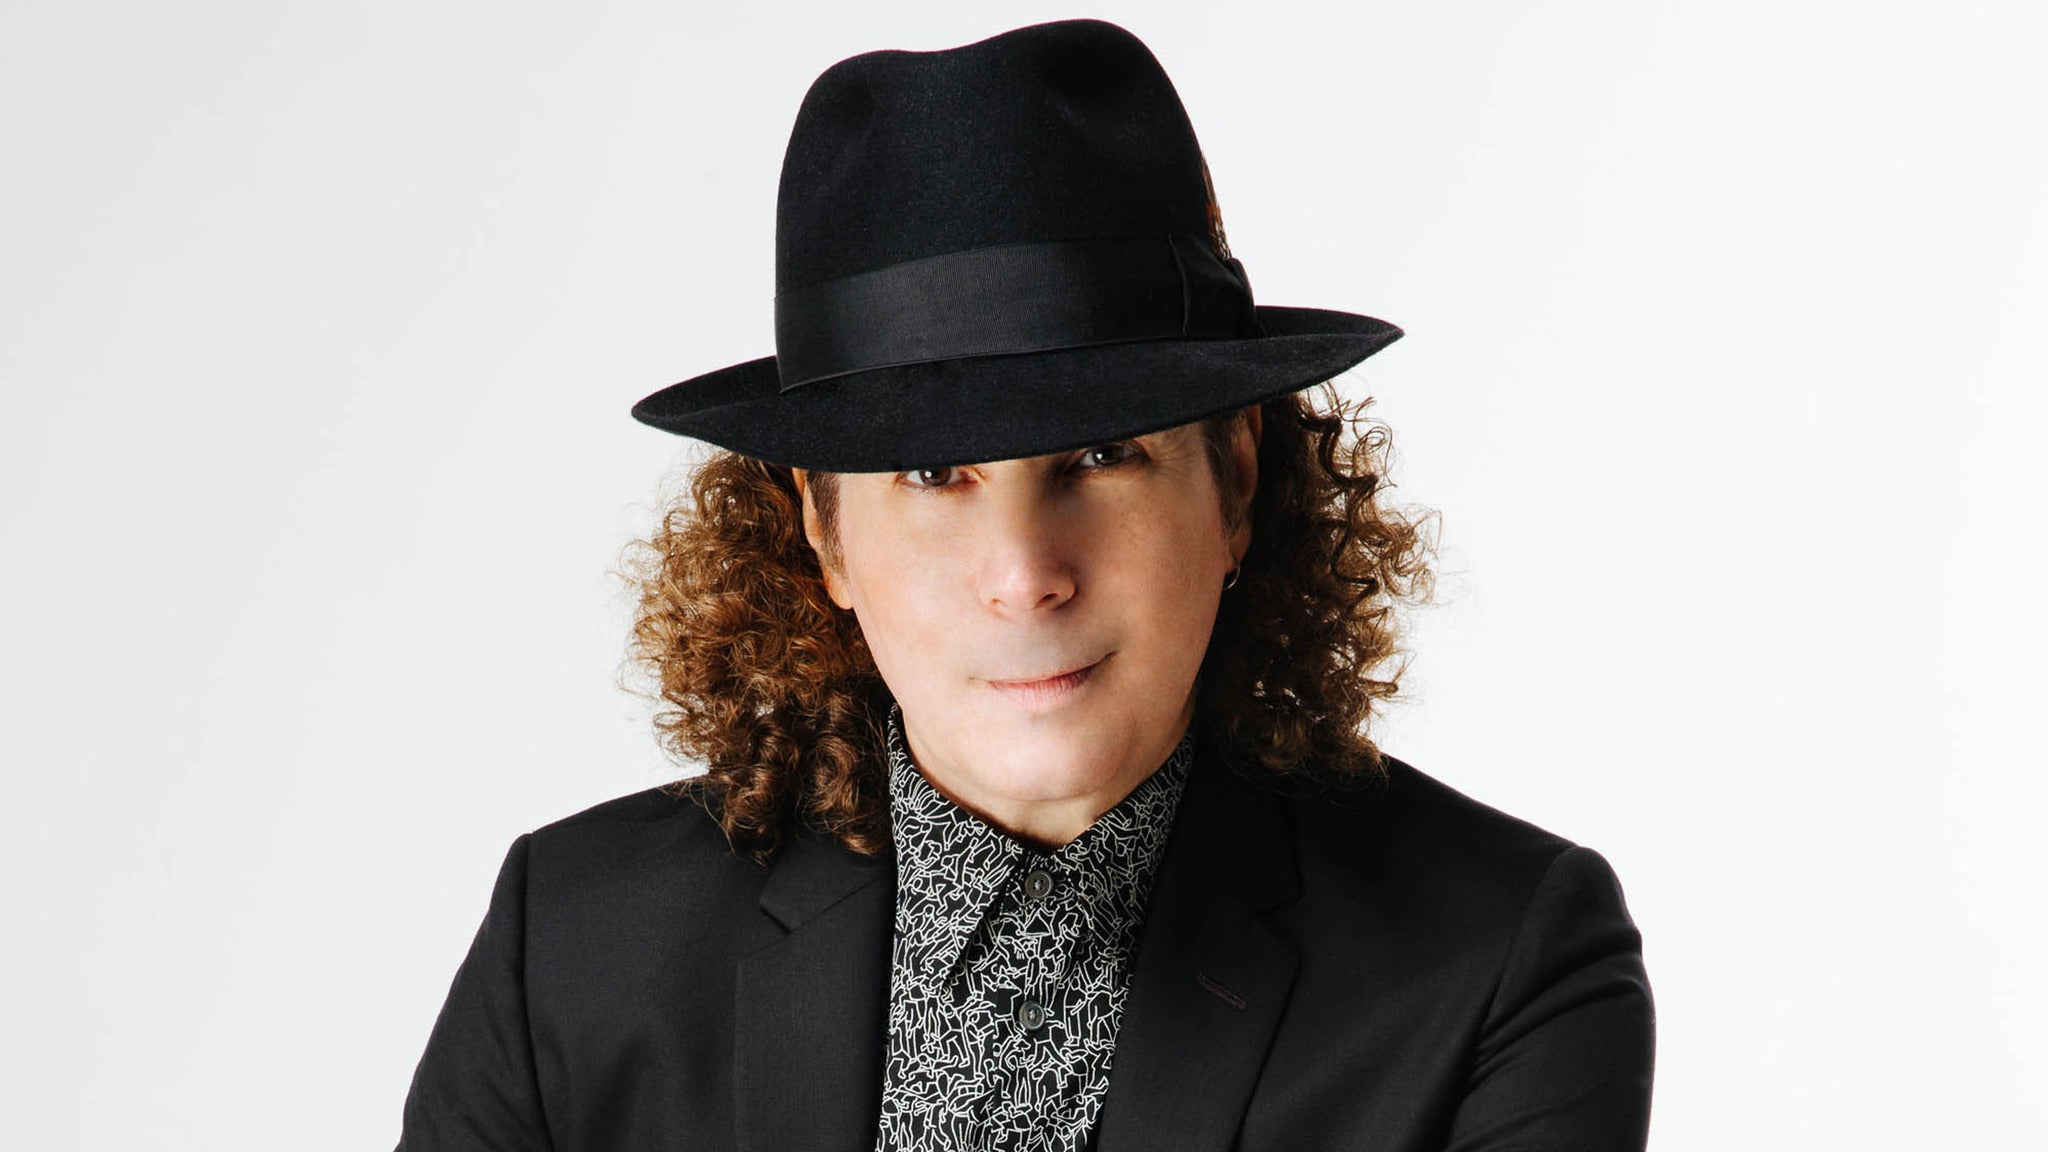 Boney James: The Honestly Tour Spring 2019